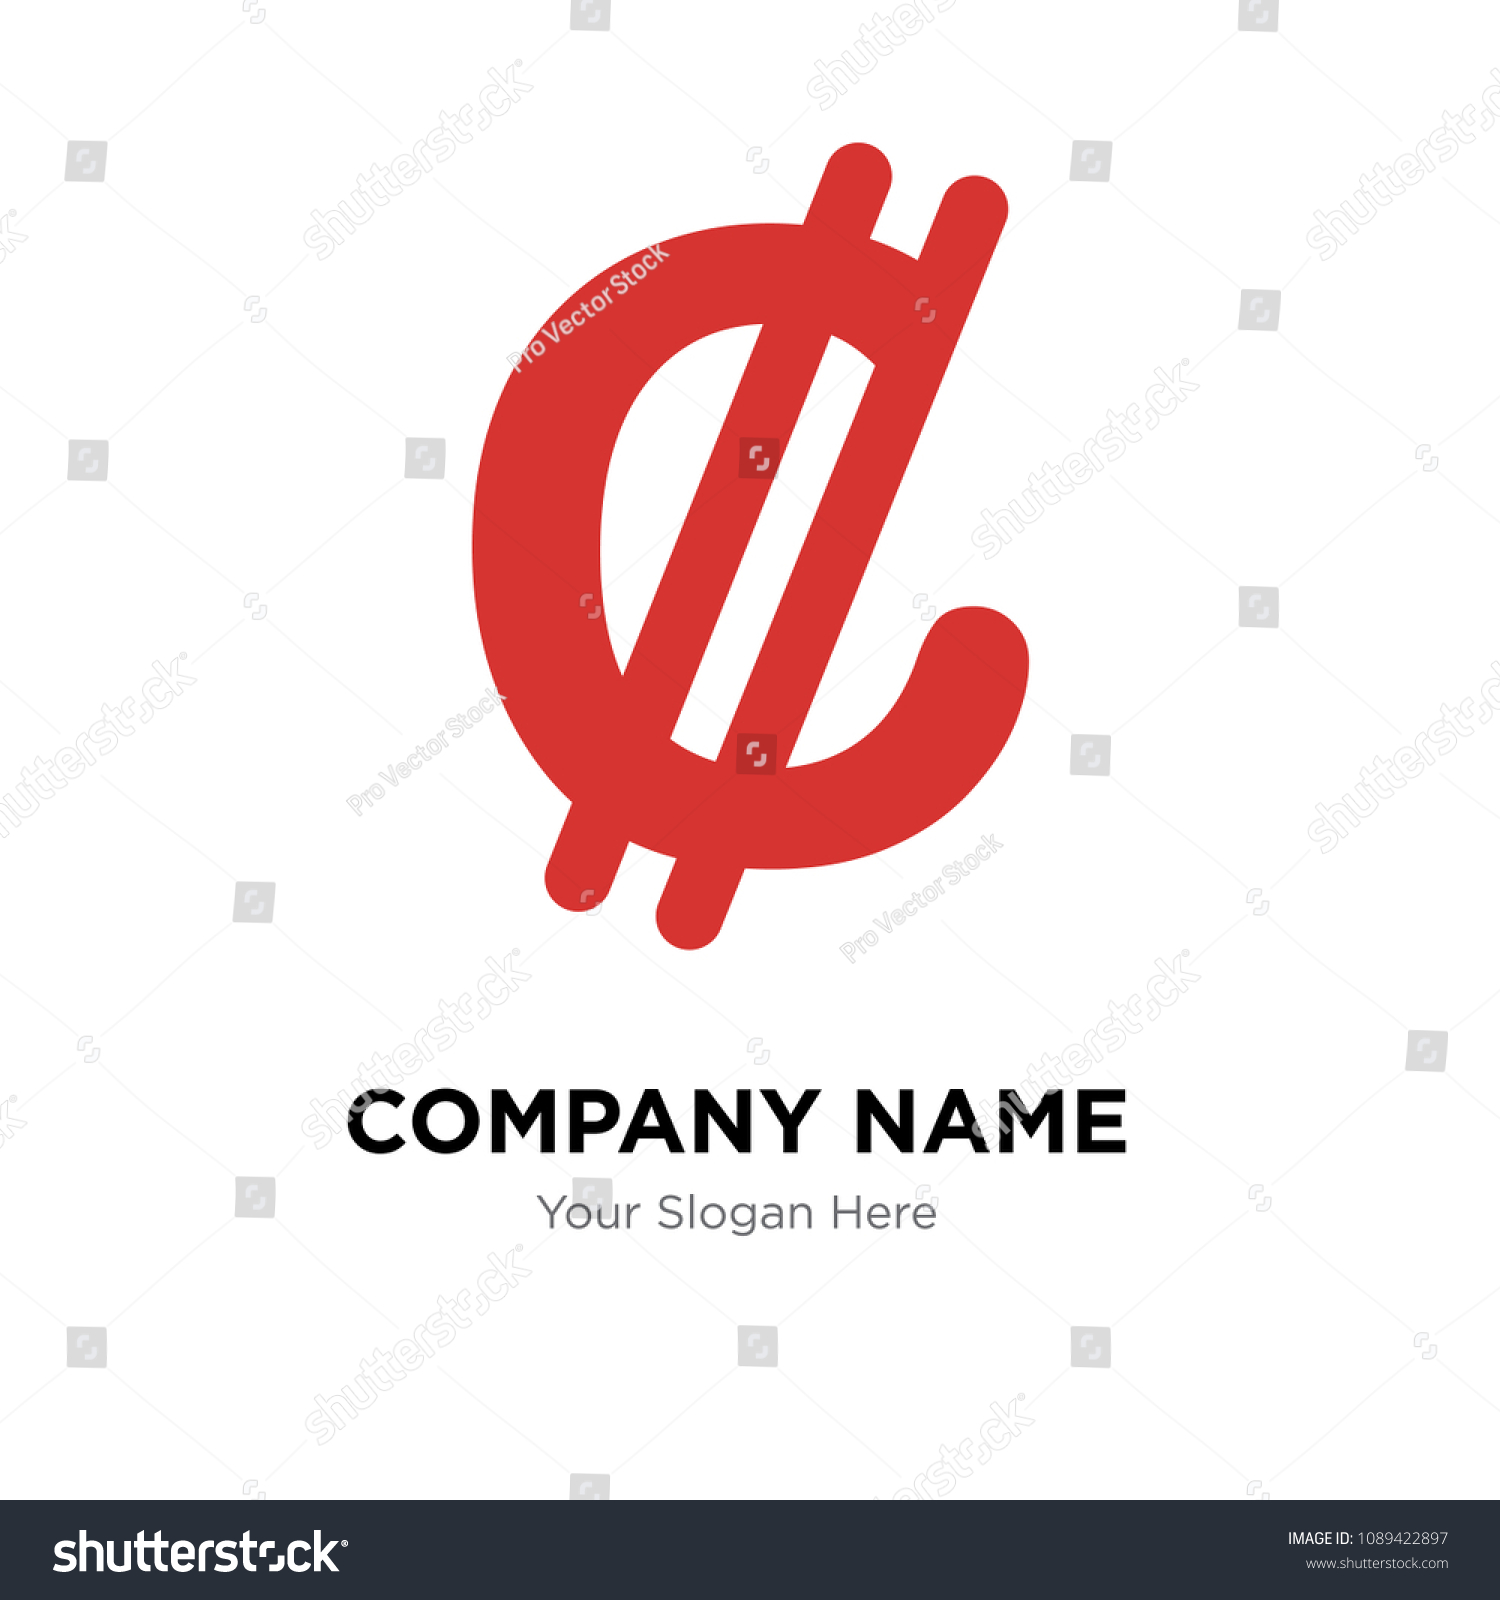 Costa Rica Currency Company Logo Design Stock Vector Royalty Free